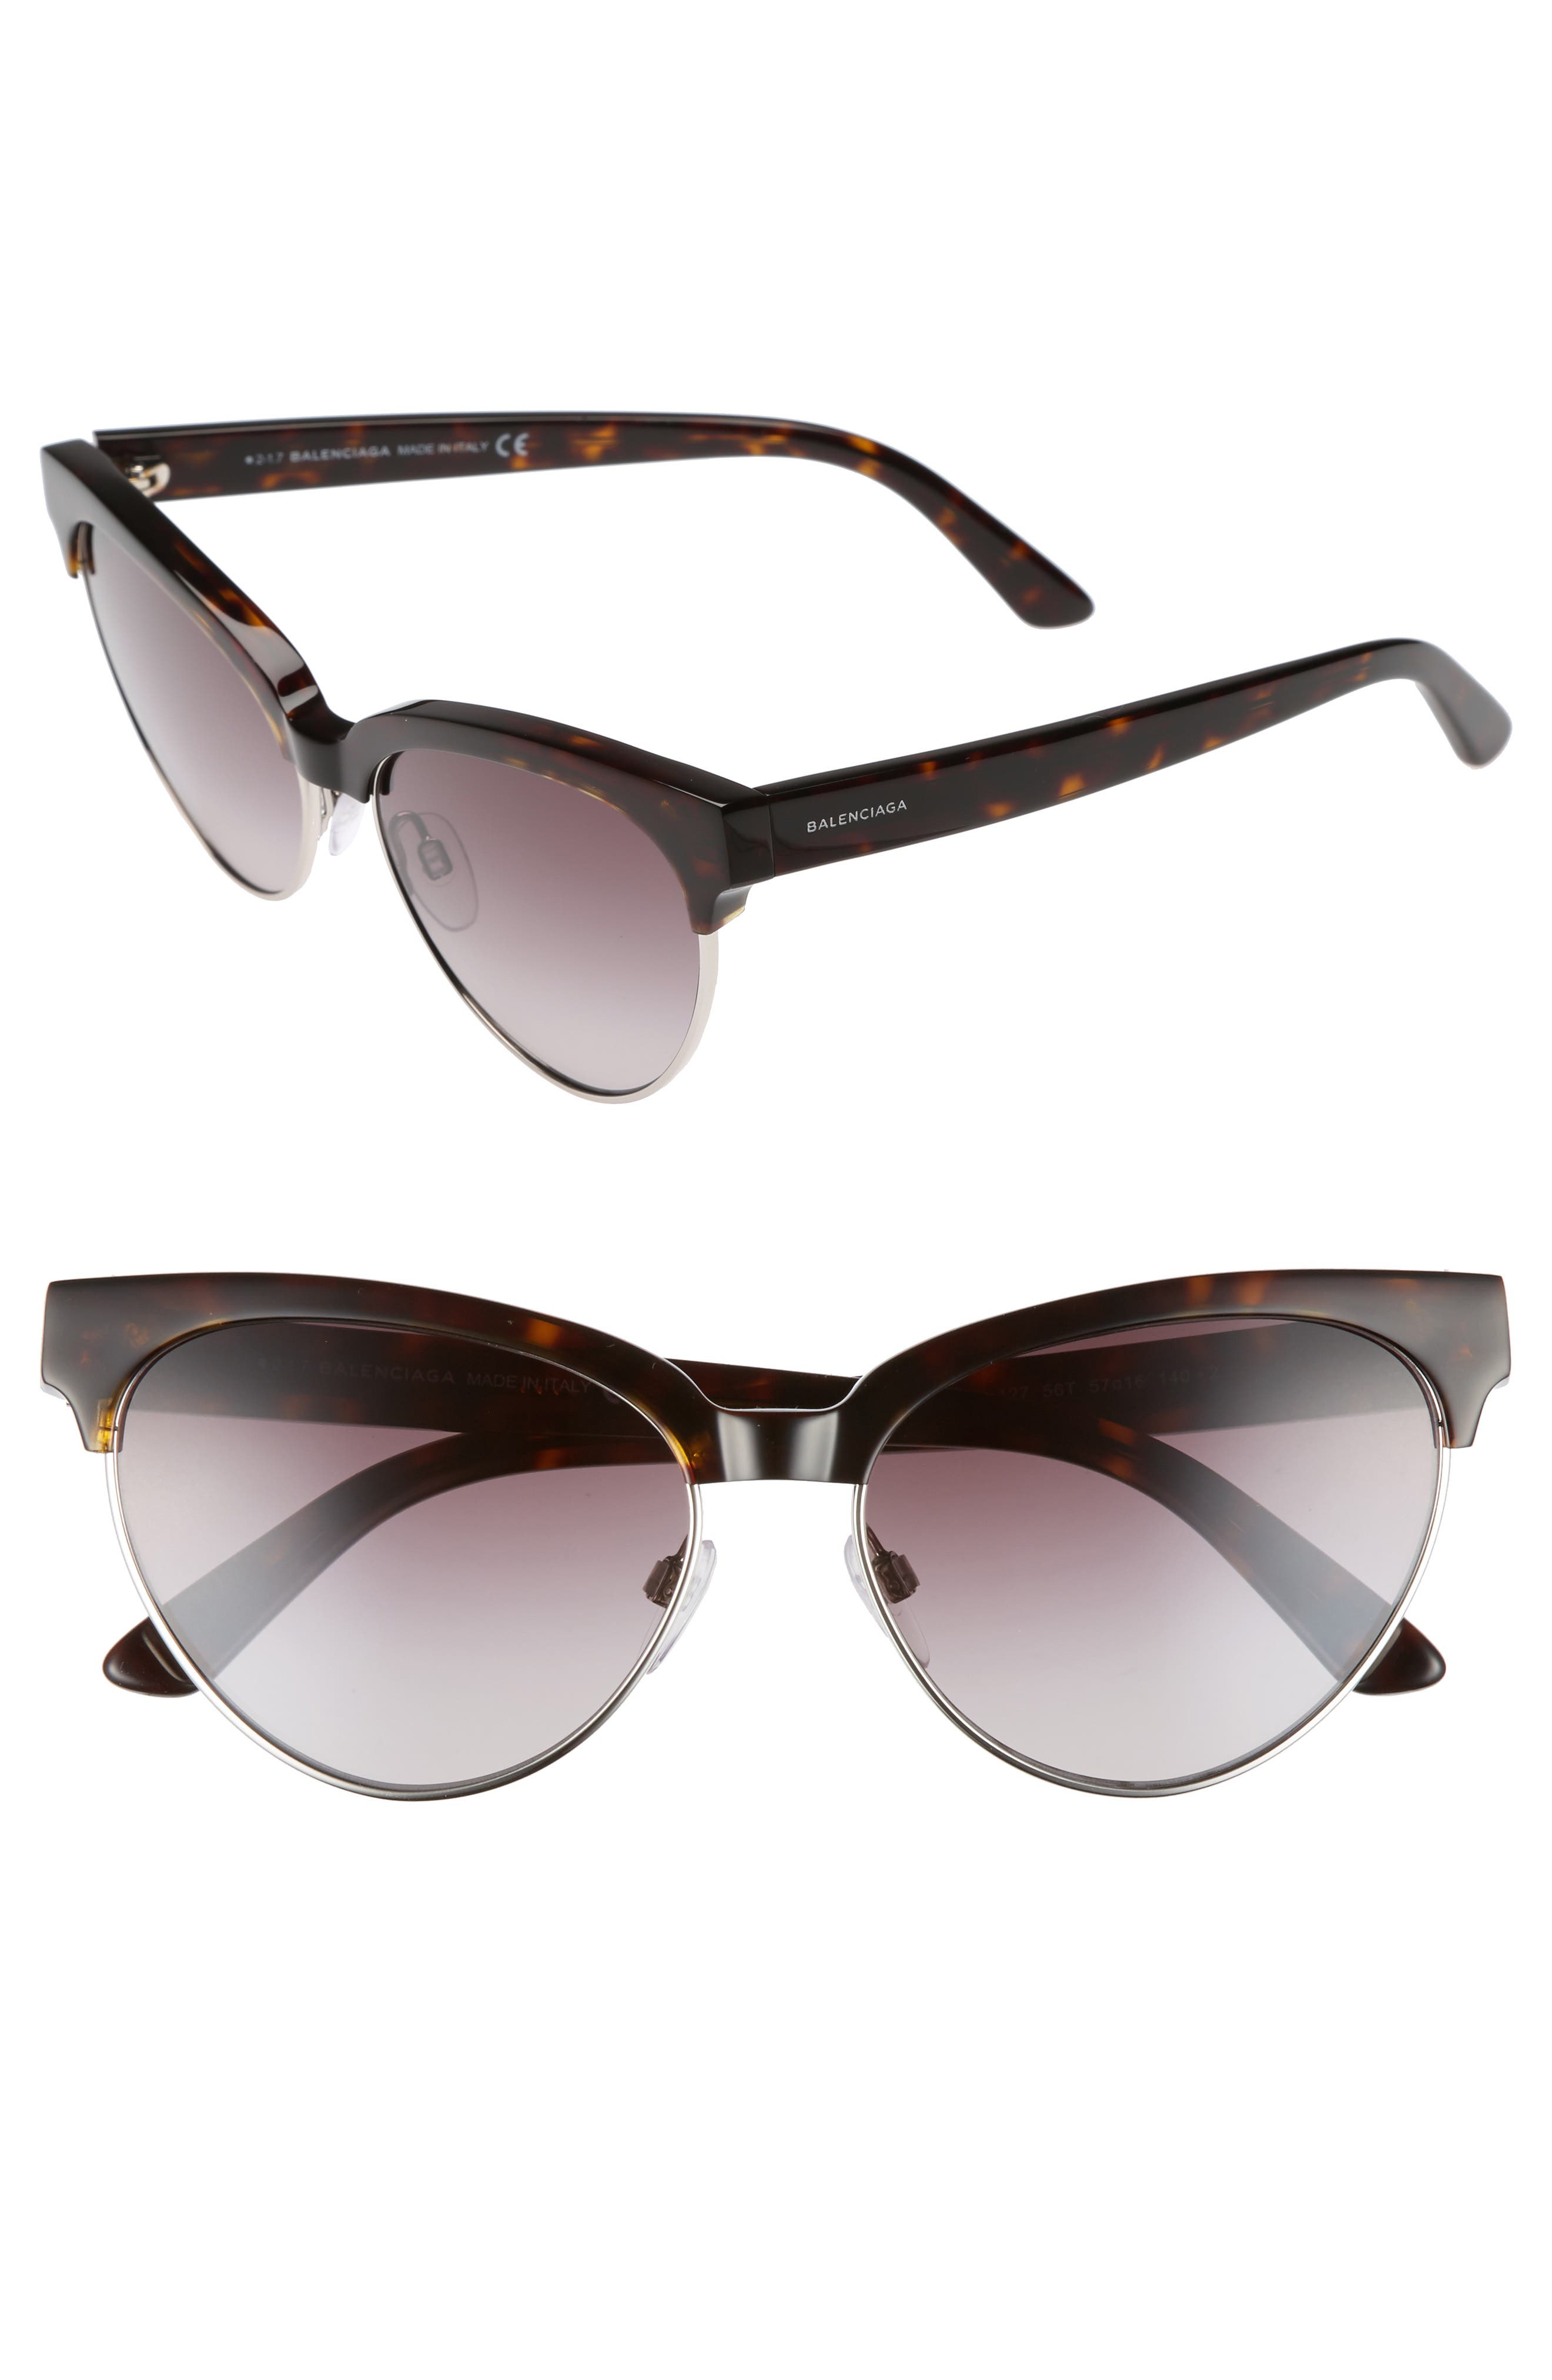 Balenciaga 57mm Gradient Cat Eye Sunglasses